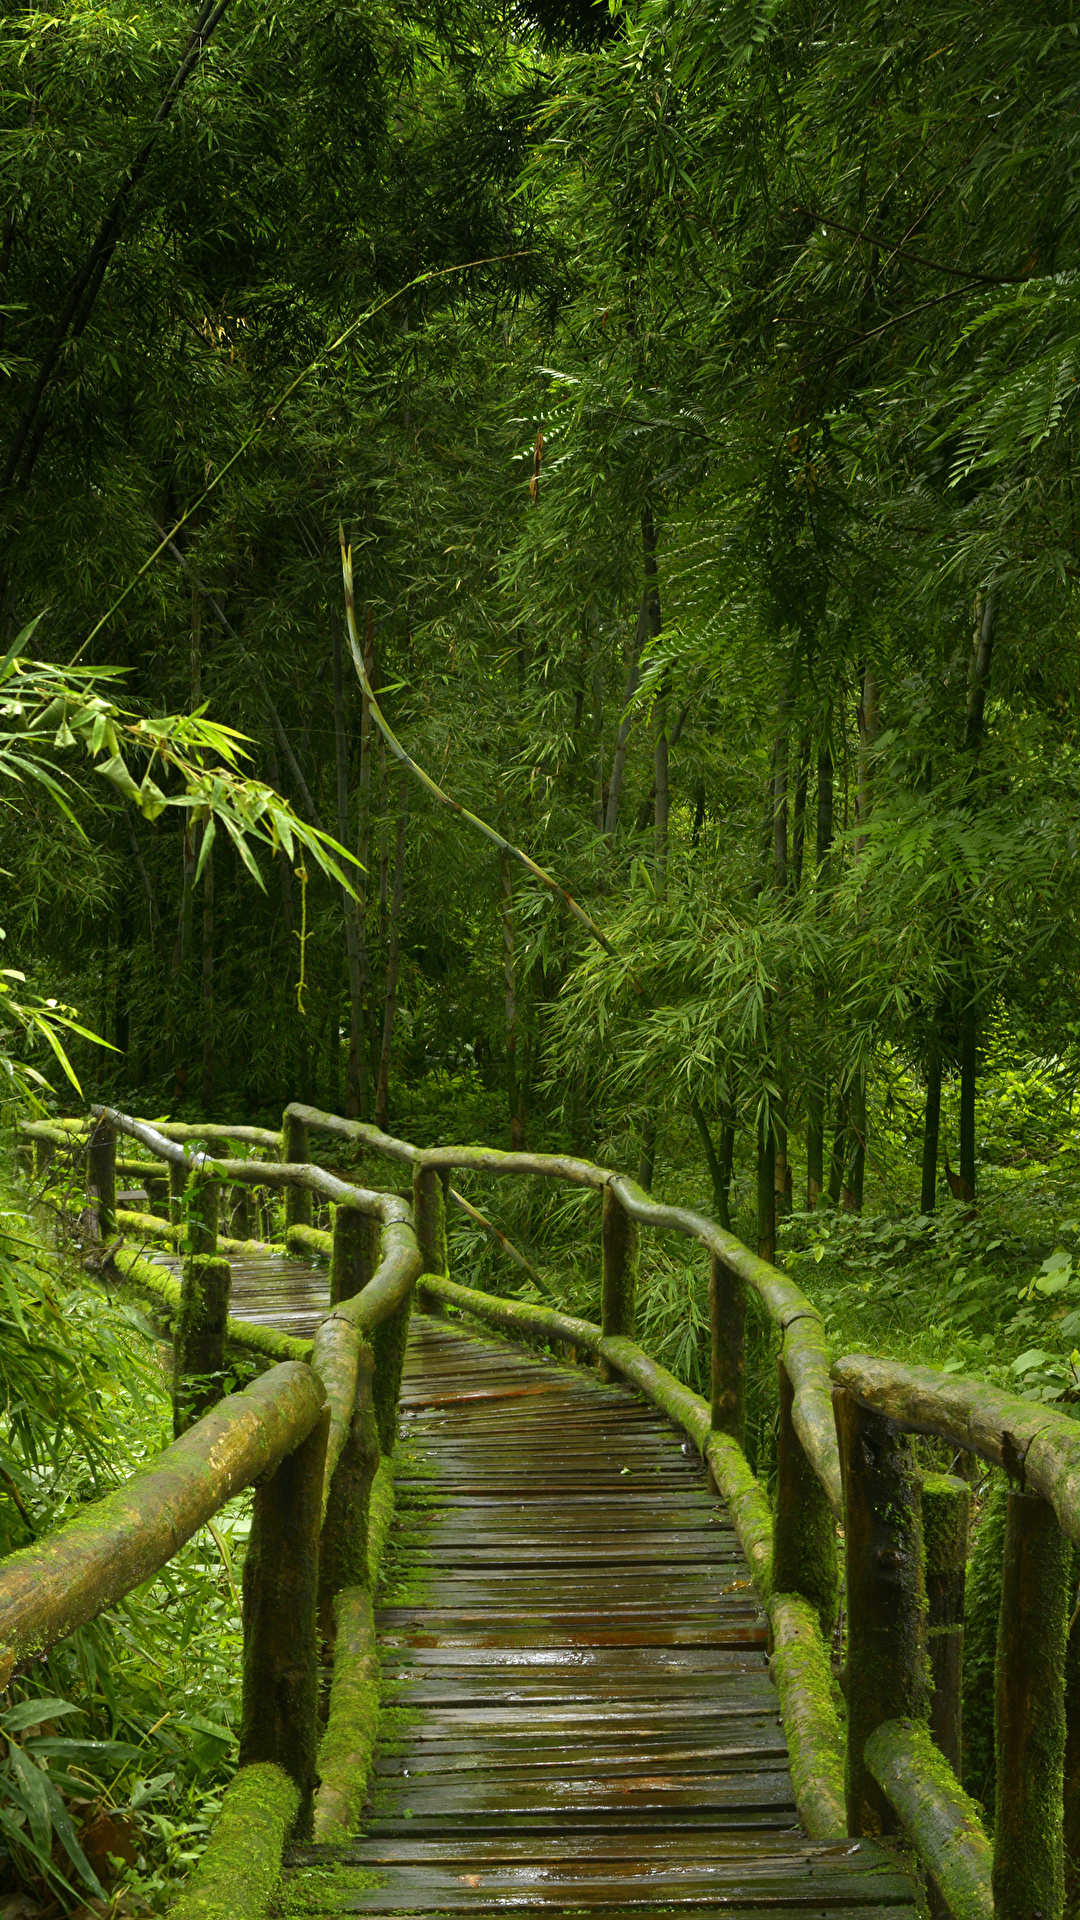 Photos Jungle Nature Bamboo Bridges Forest Tropics Moss